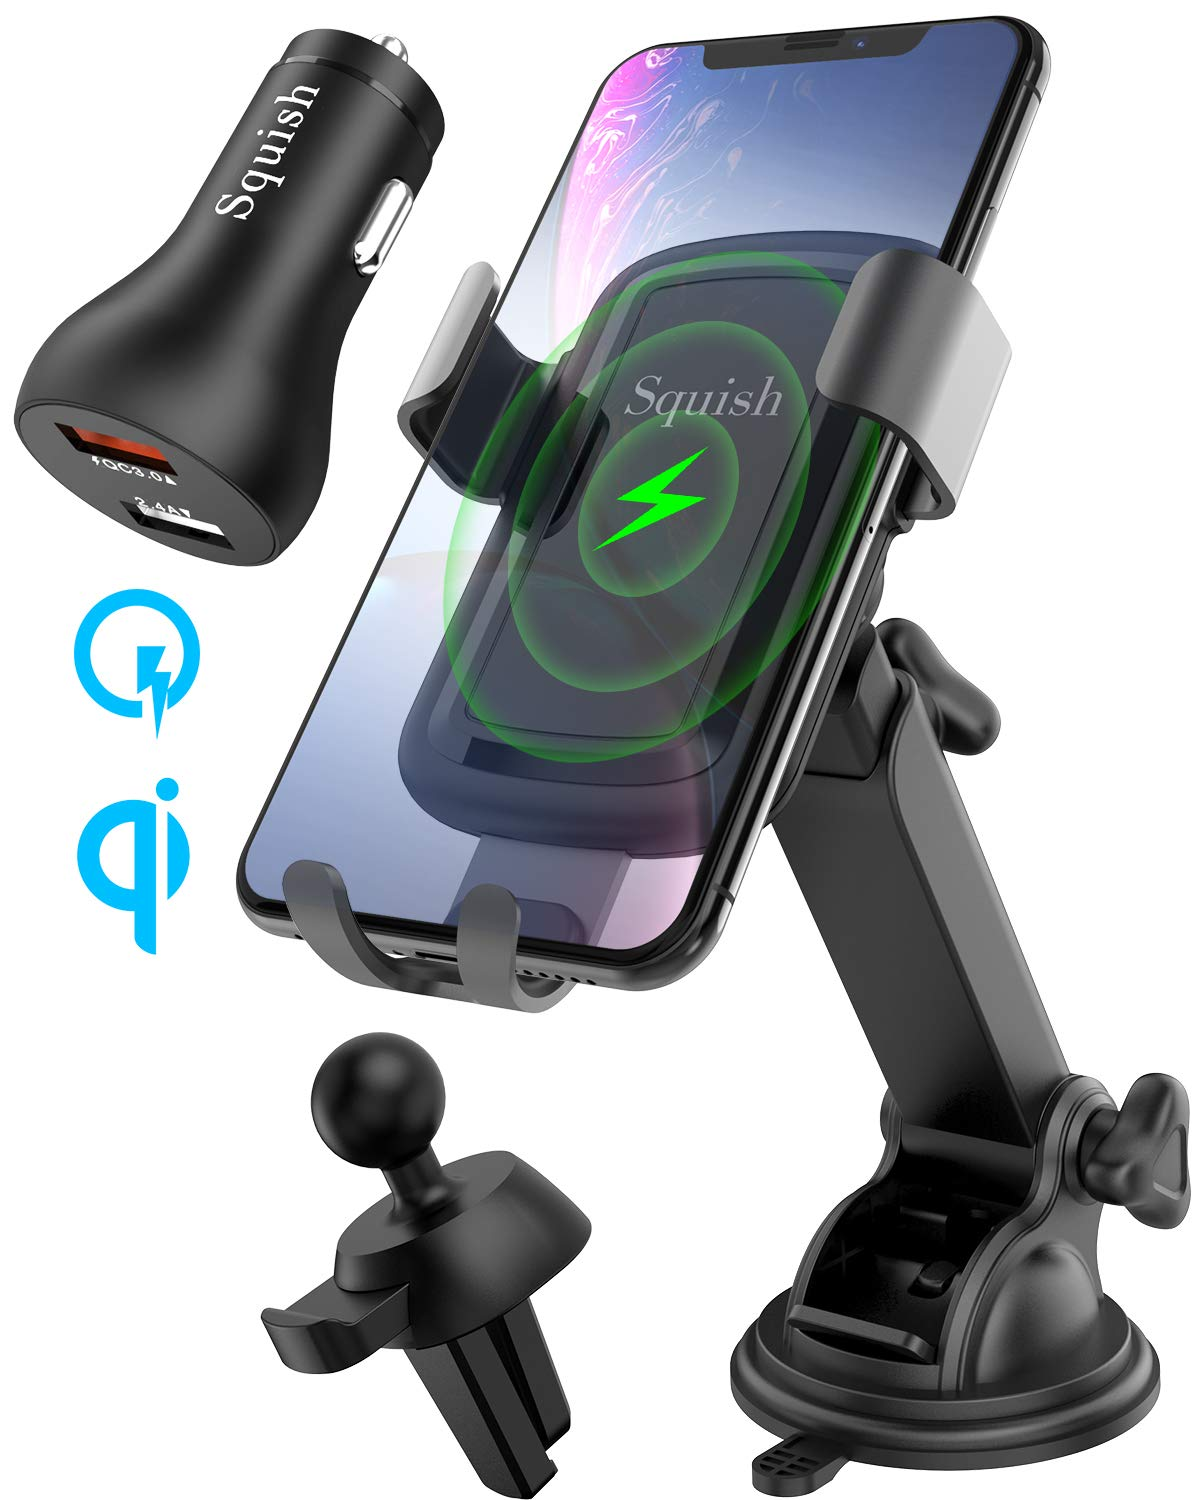 Squish Qi Wireless Car Charger Mount with QC 3.0 Car Charger, Air Vent Holder Included, 10W 7.5W Fast Charging Car Mount for iPhone Xs MAX/XR/XS/X/8/8 Plus Samsung S10 S9 S8 S7 Samsung Note 9 8 7 etc by Squish